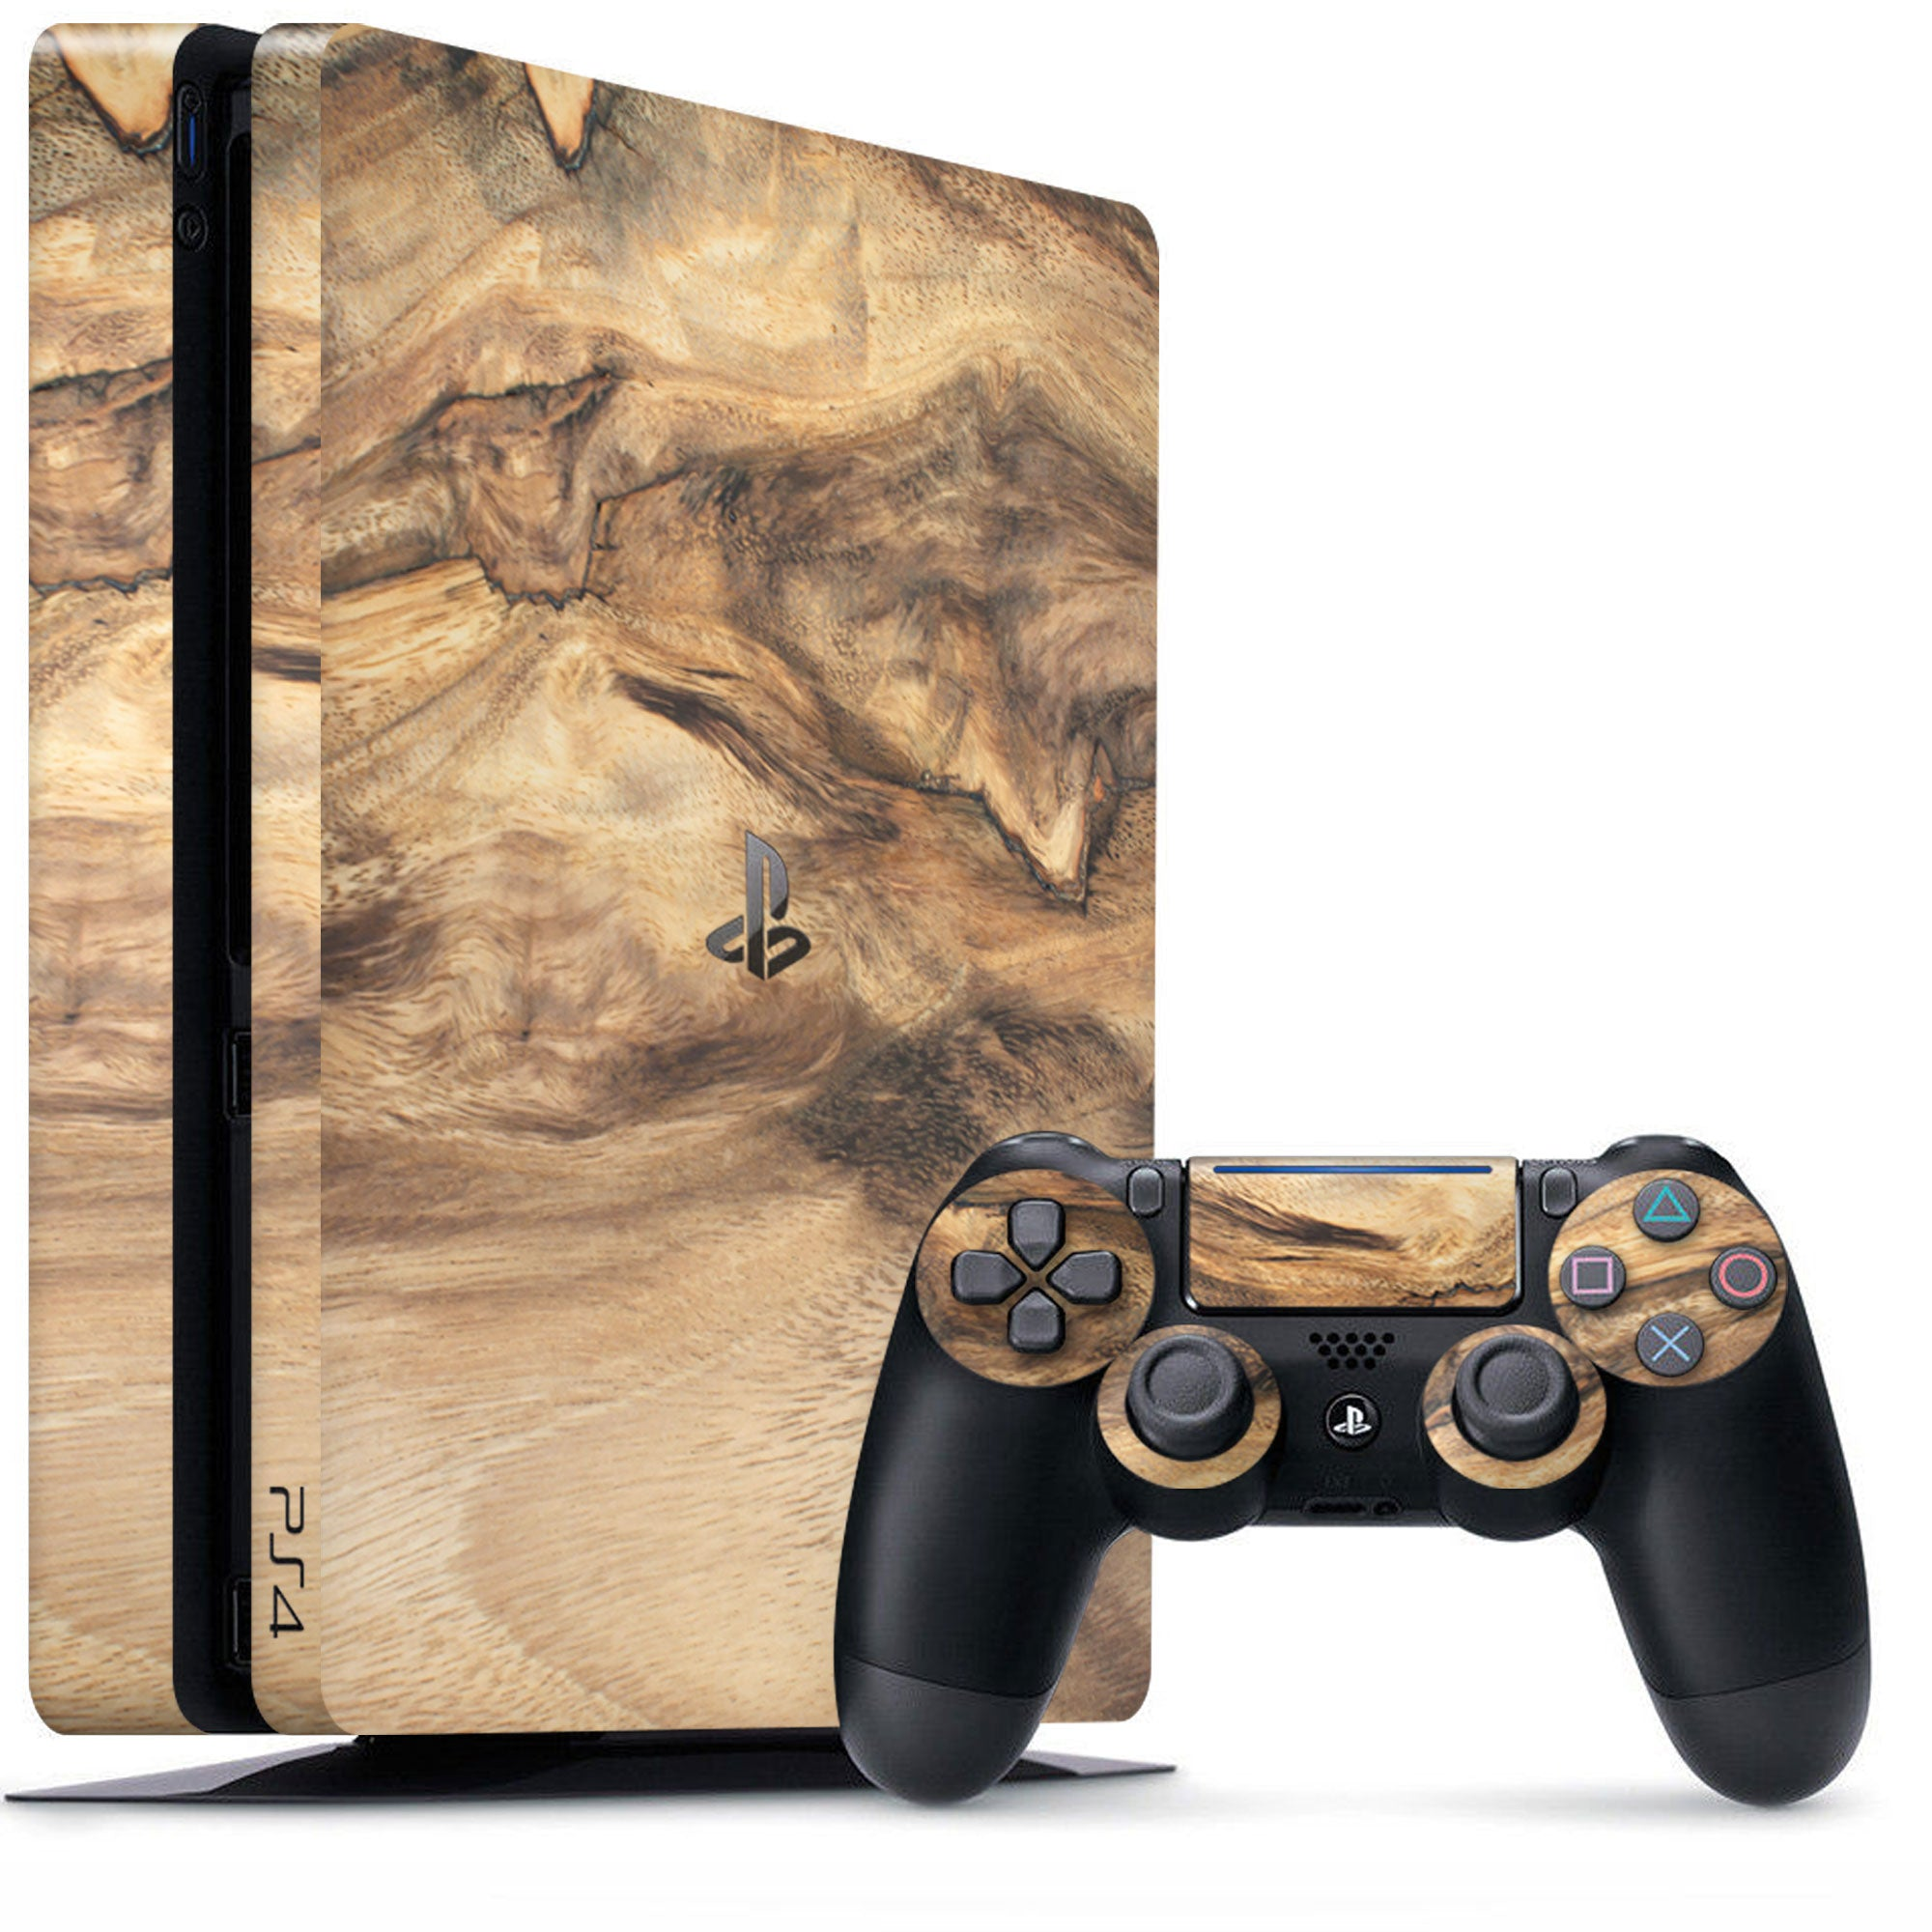 Playstation skins and wraps